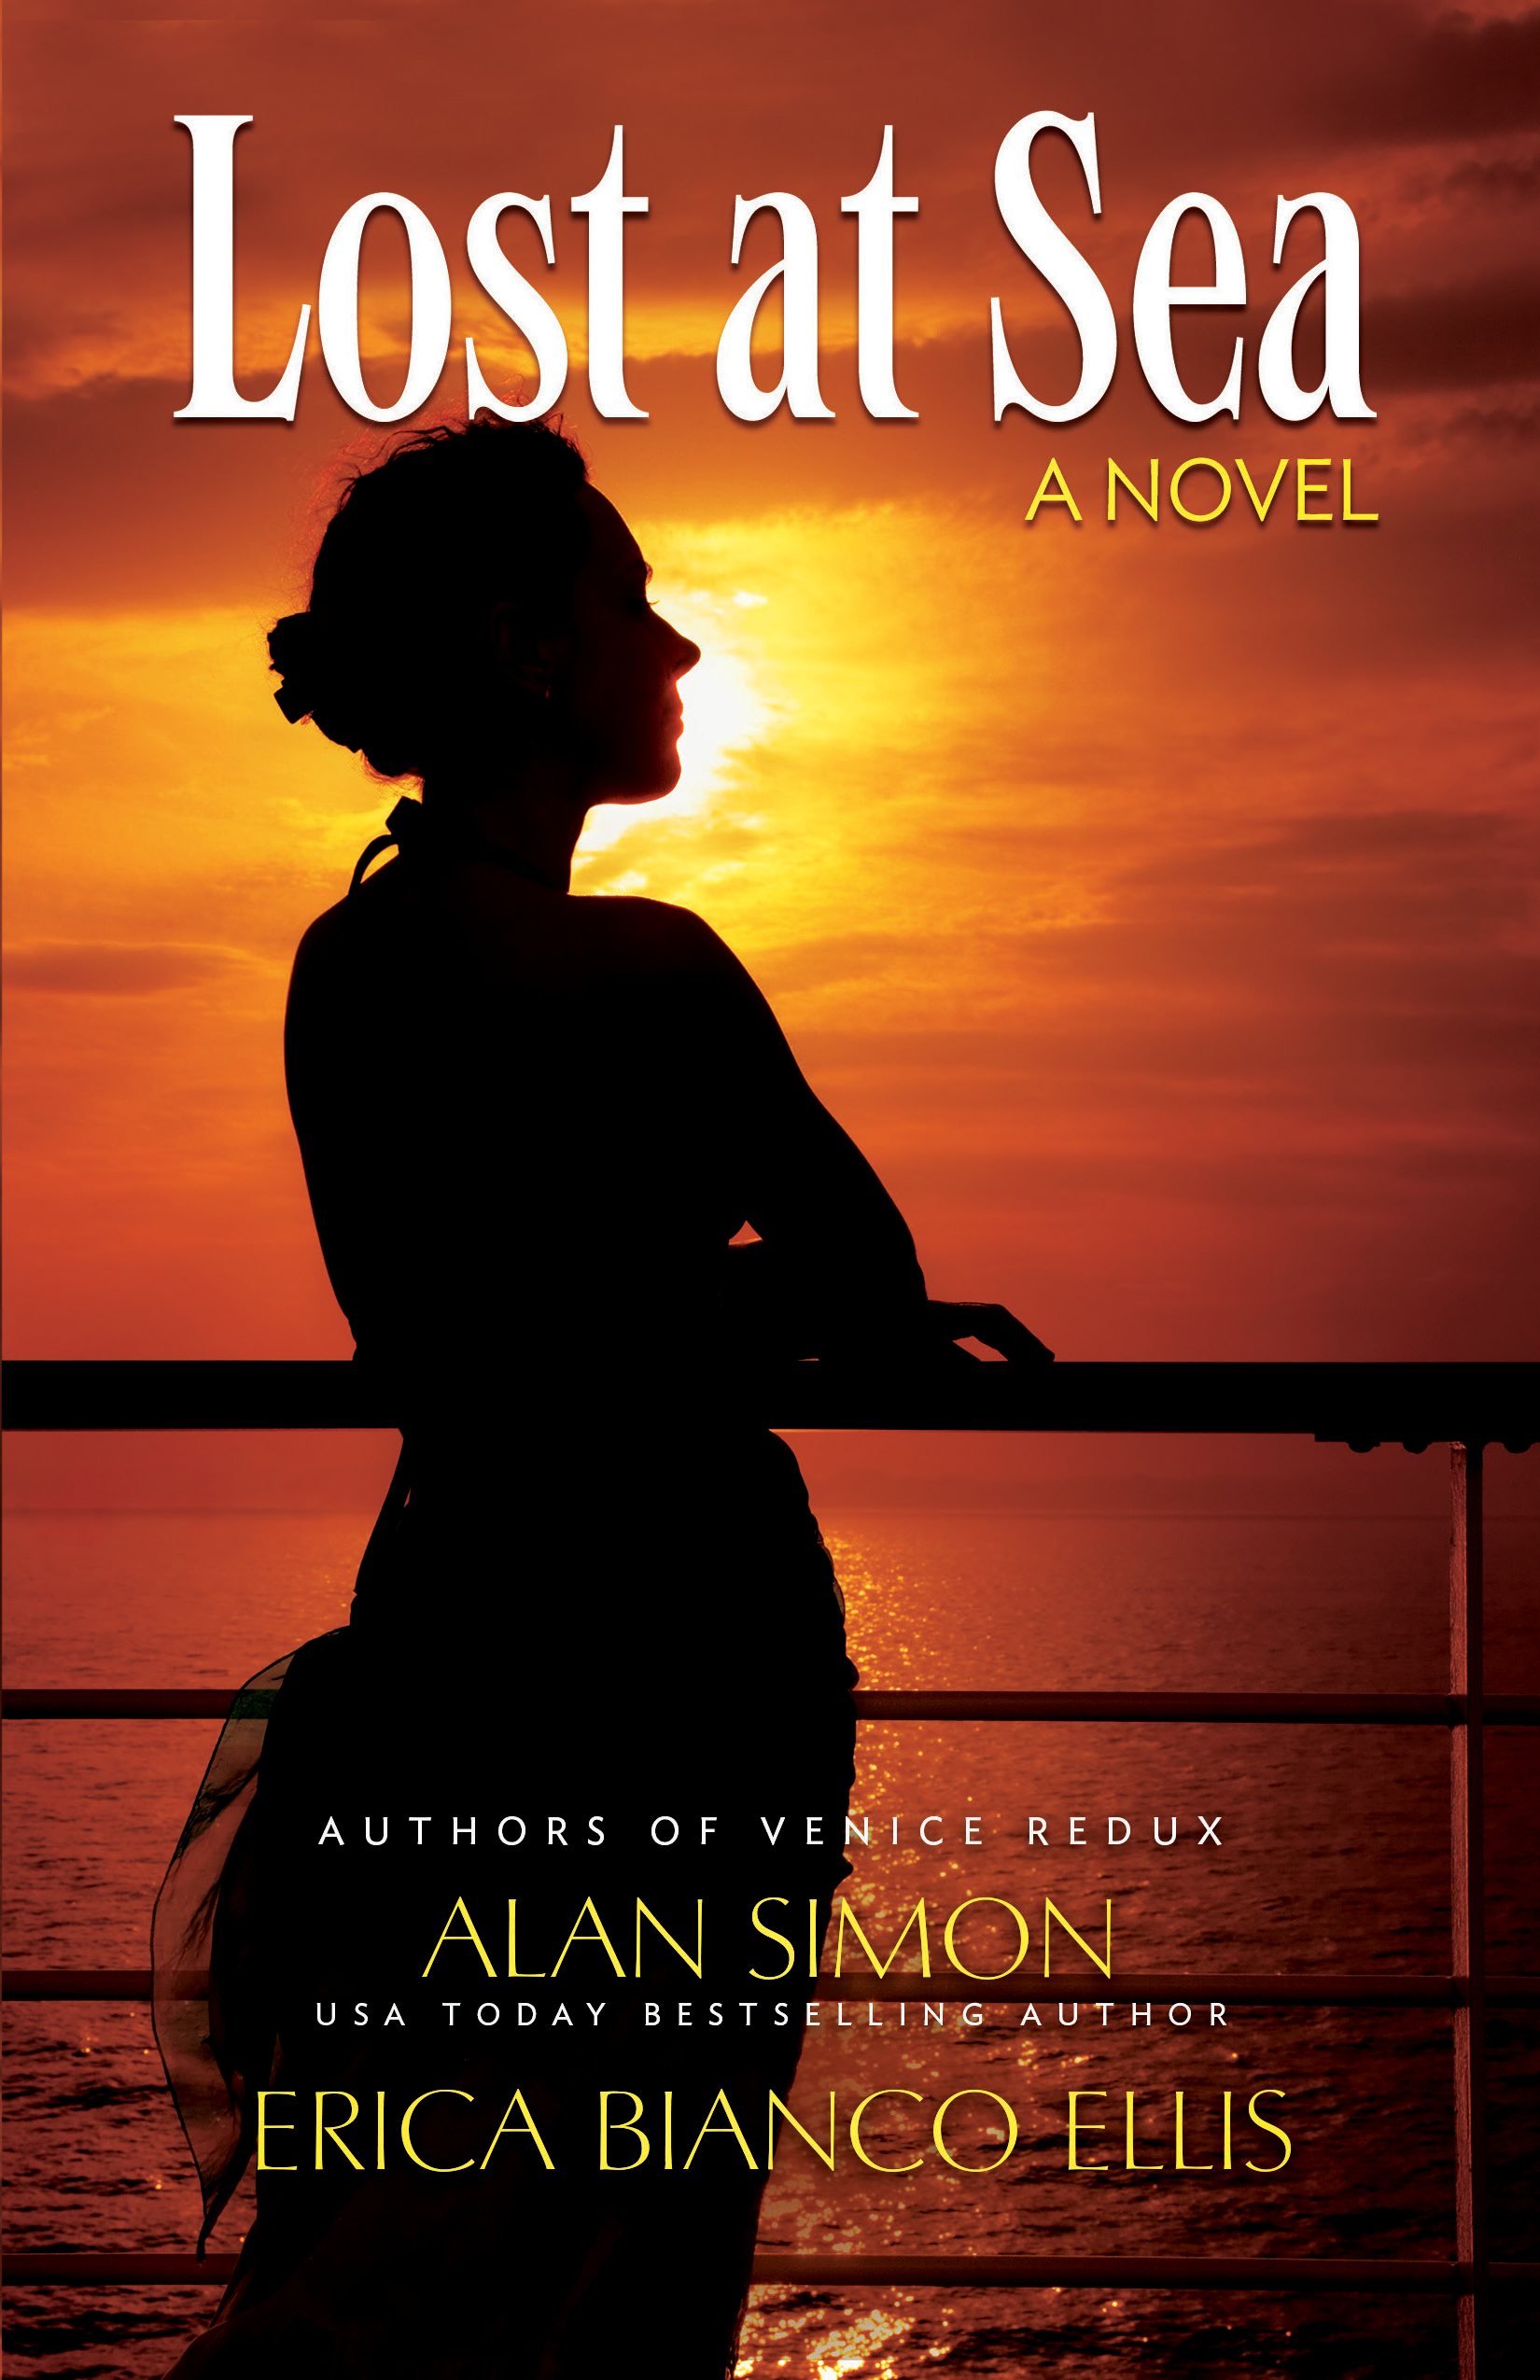 Read yourself to Baja - Erica & Alan's Latest Book